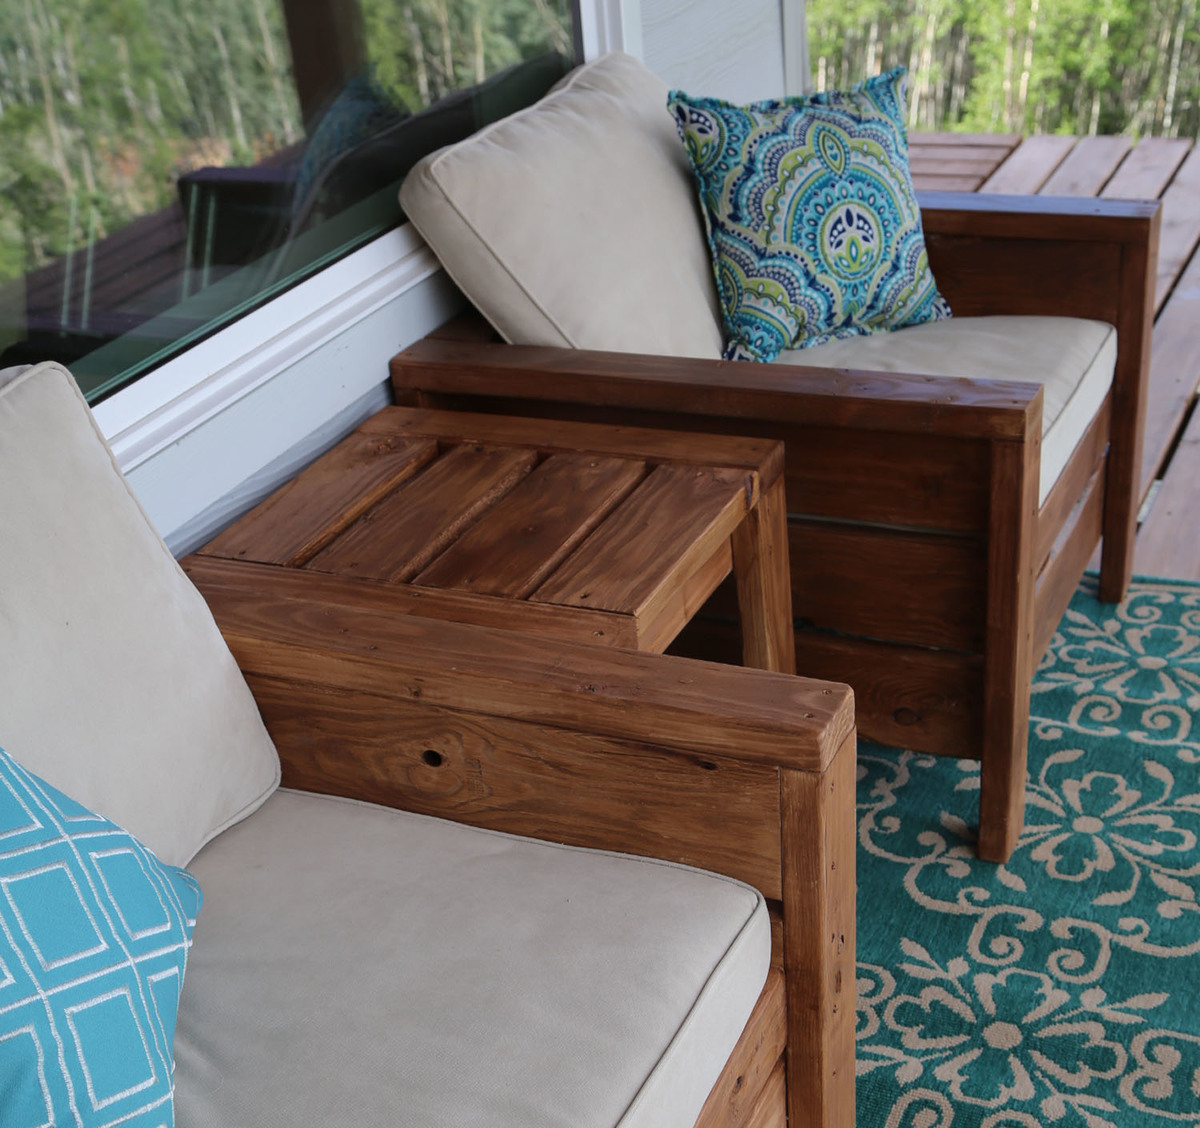 Easy To Build, Sturdy Modern Outdoor Chairs For Deck Or Patio   Free Plans  By Ana White.com